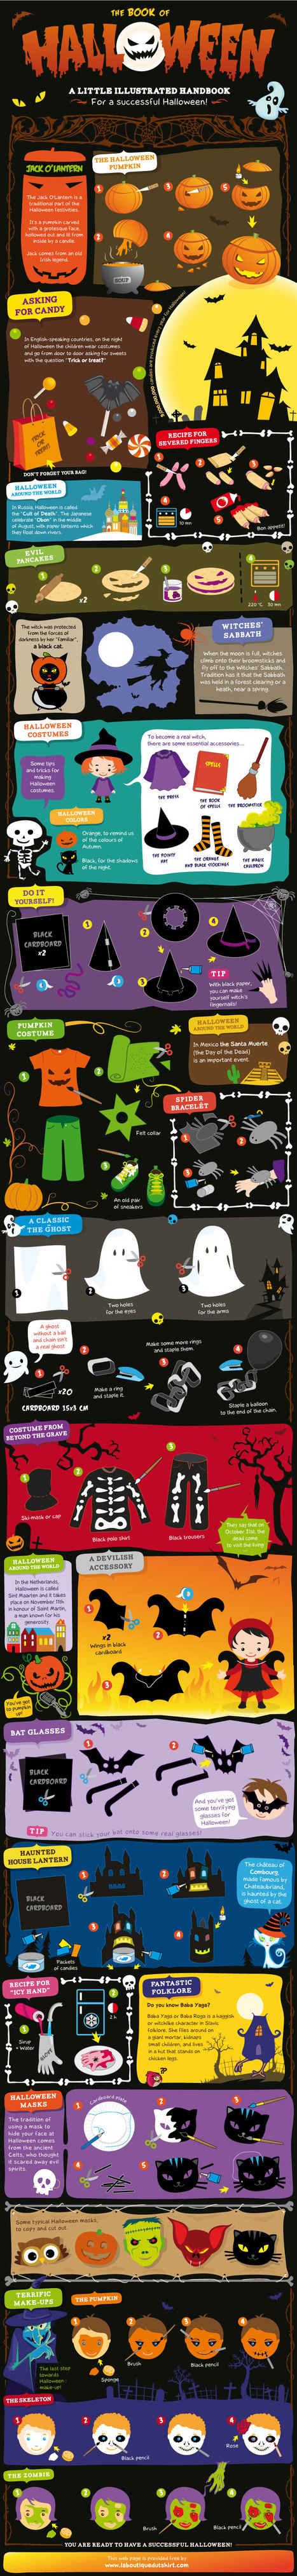 Teach Your Students about Halloween with This Halloween Book [Infographic] | Better teaching, more learning | Scoop.it